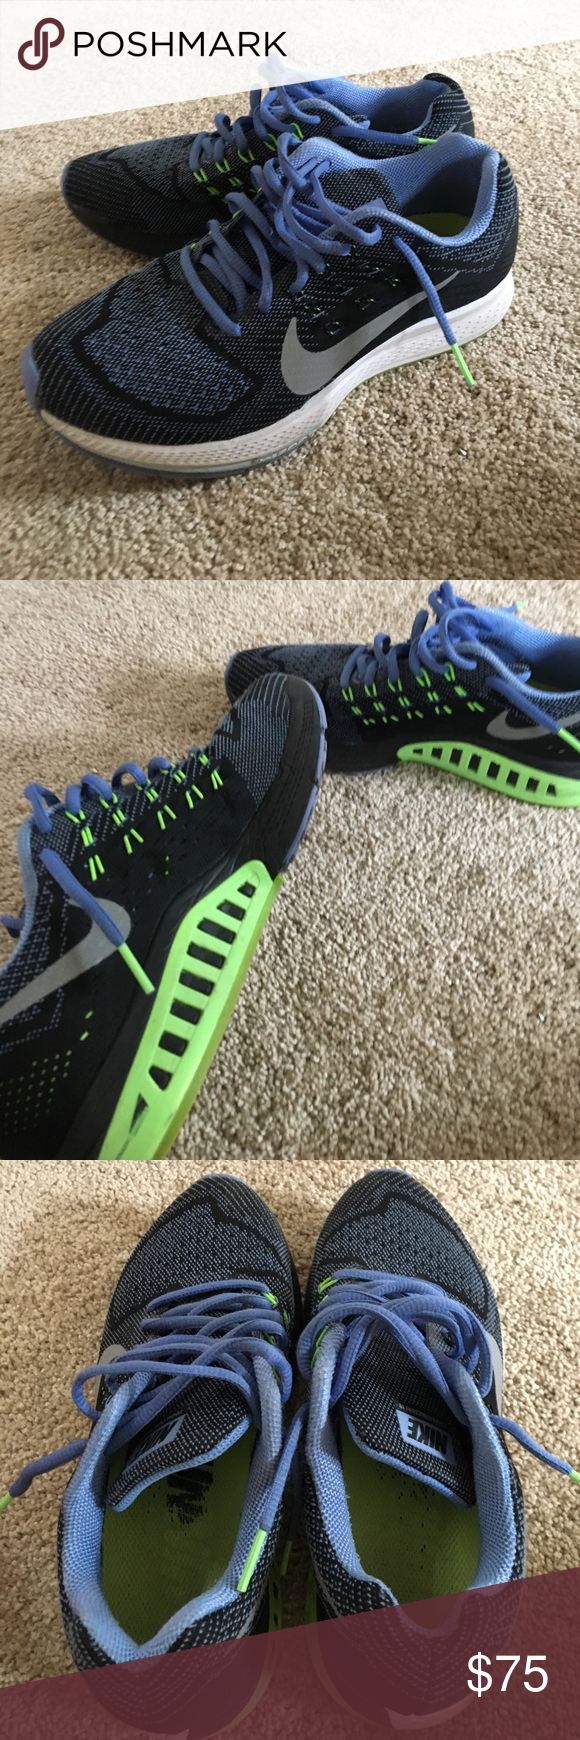 Nike Zoom Structure 18 Running Shoe Great used condition, very little signs  of wear.